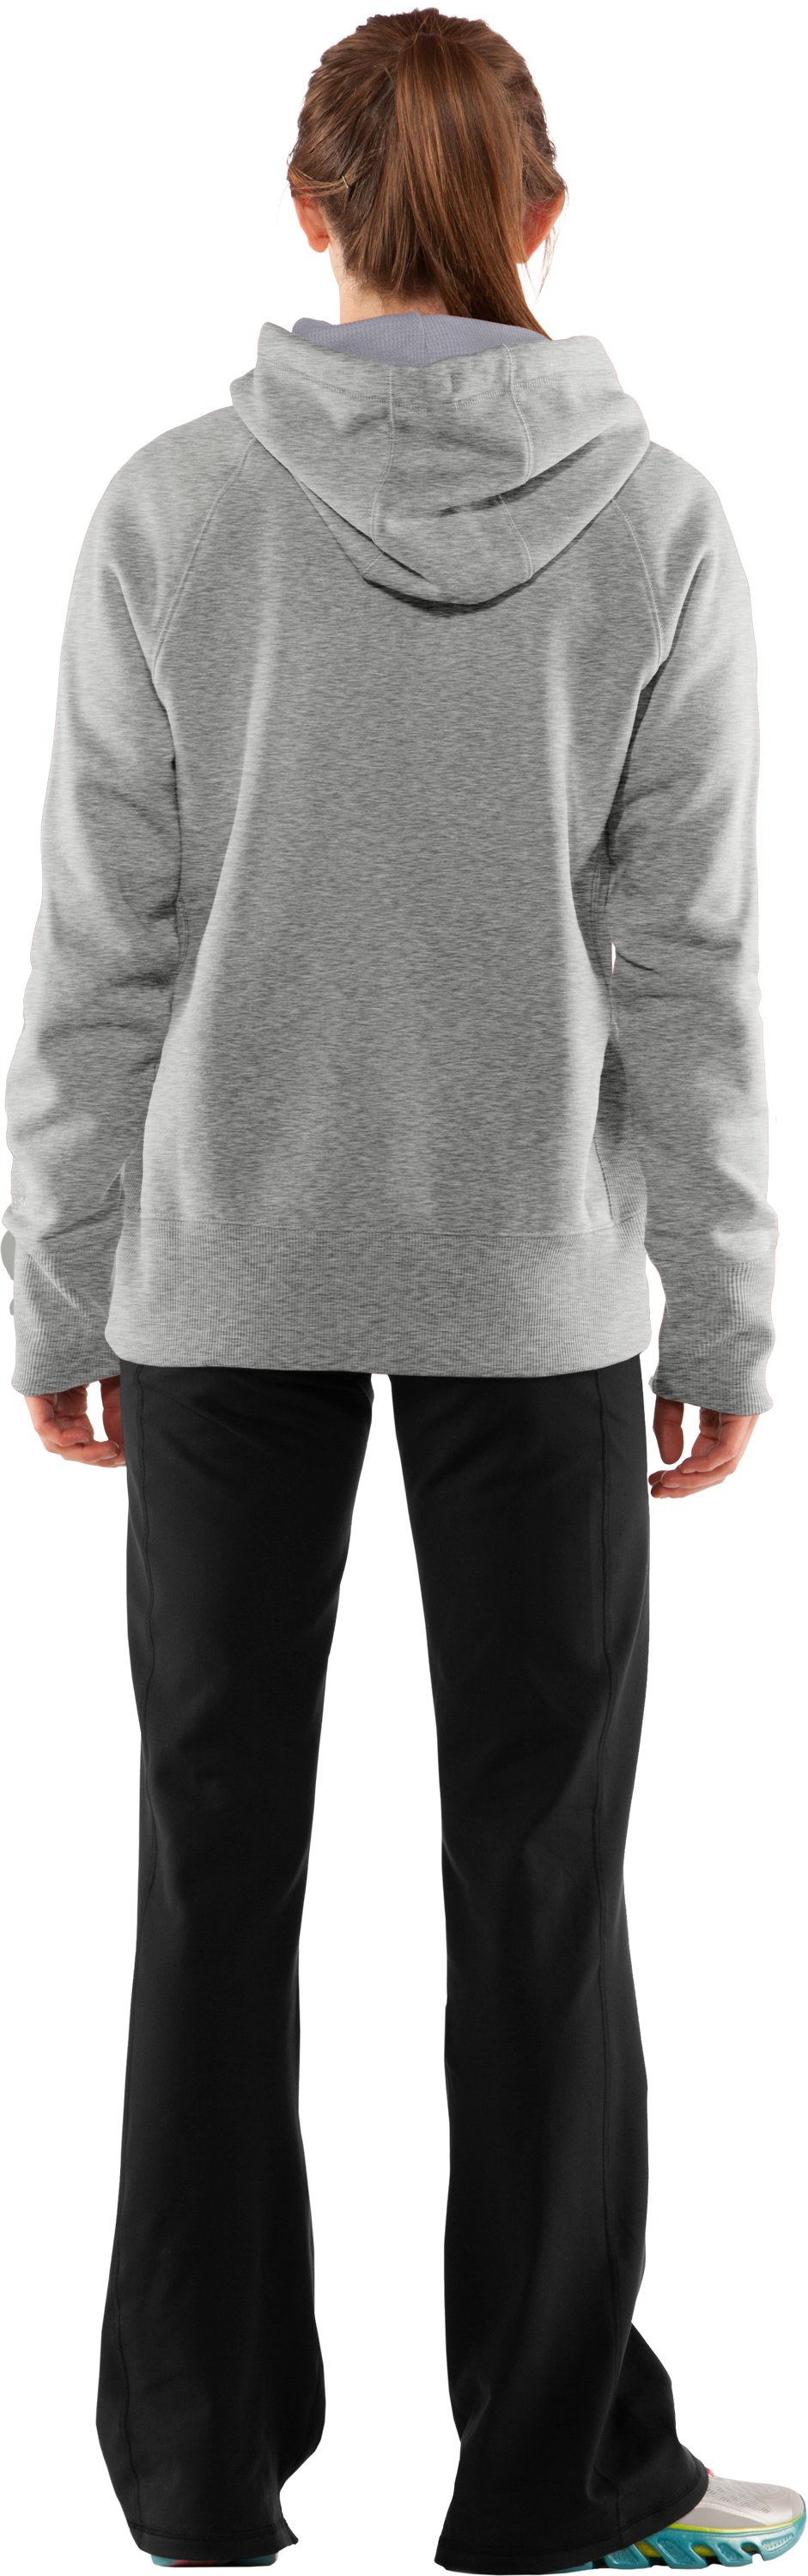 Women's Charged Cotton® Storm Hoodie, Silver Heather, Back